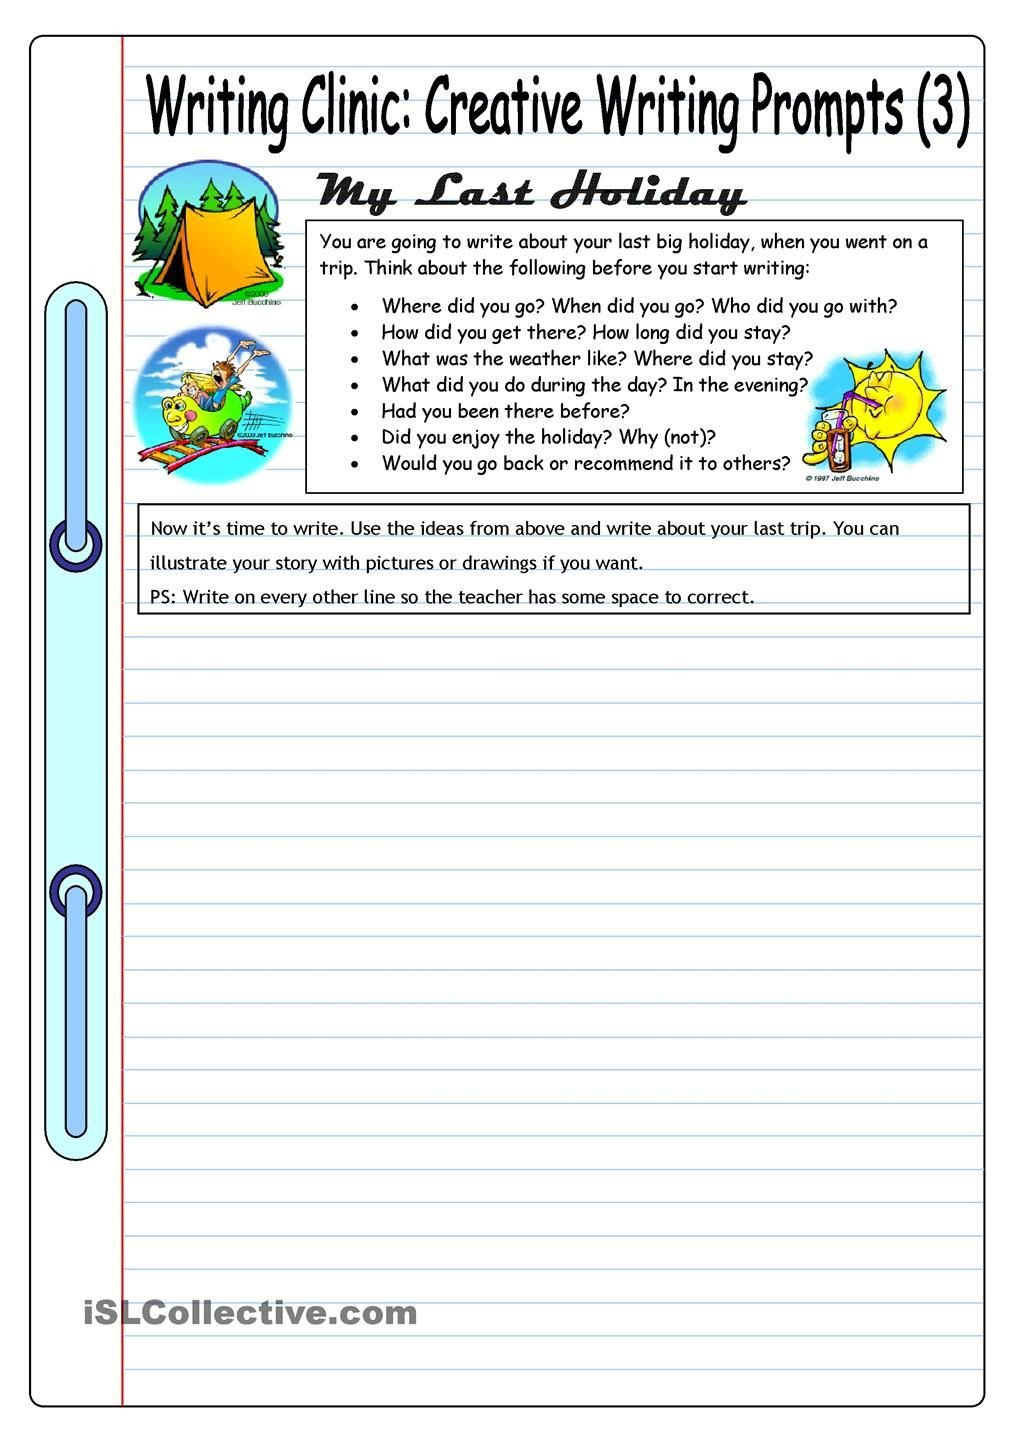 Creative Writing Worksheets for Adults Writing Clinic Creative Writing Prompts 3 My Last